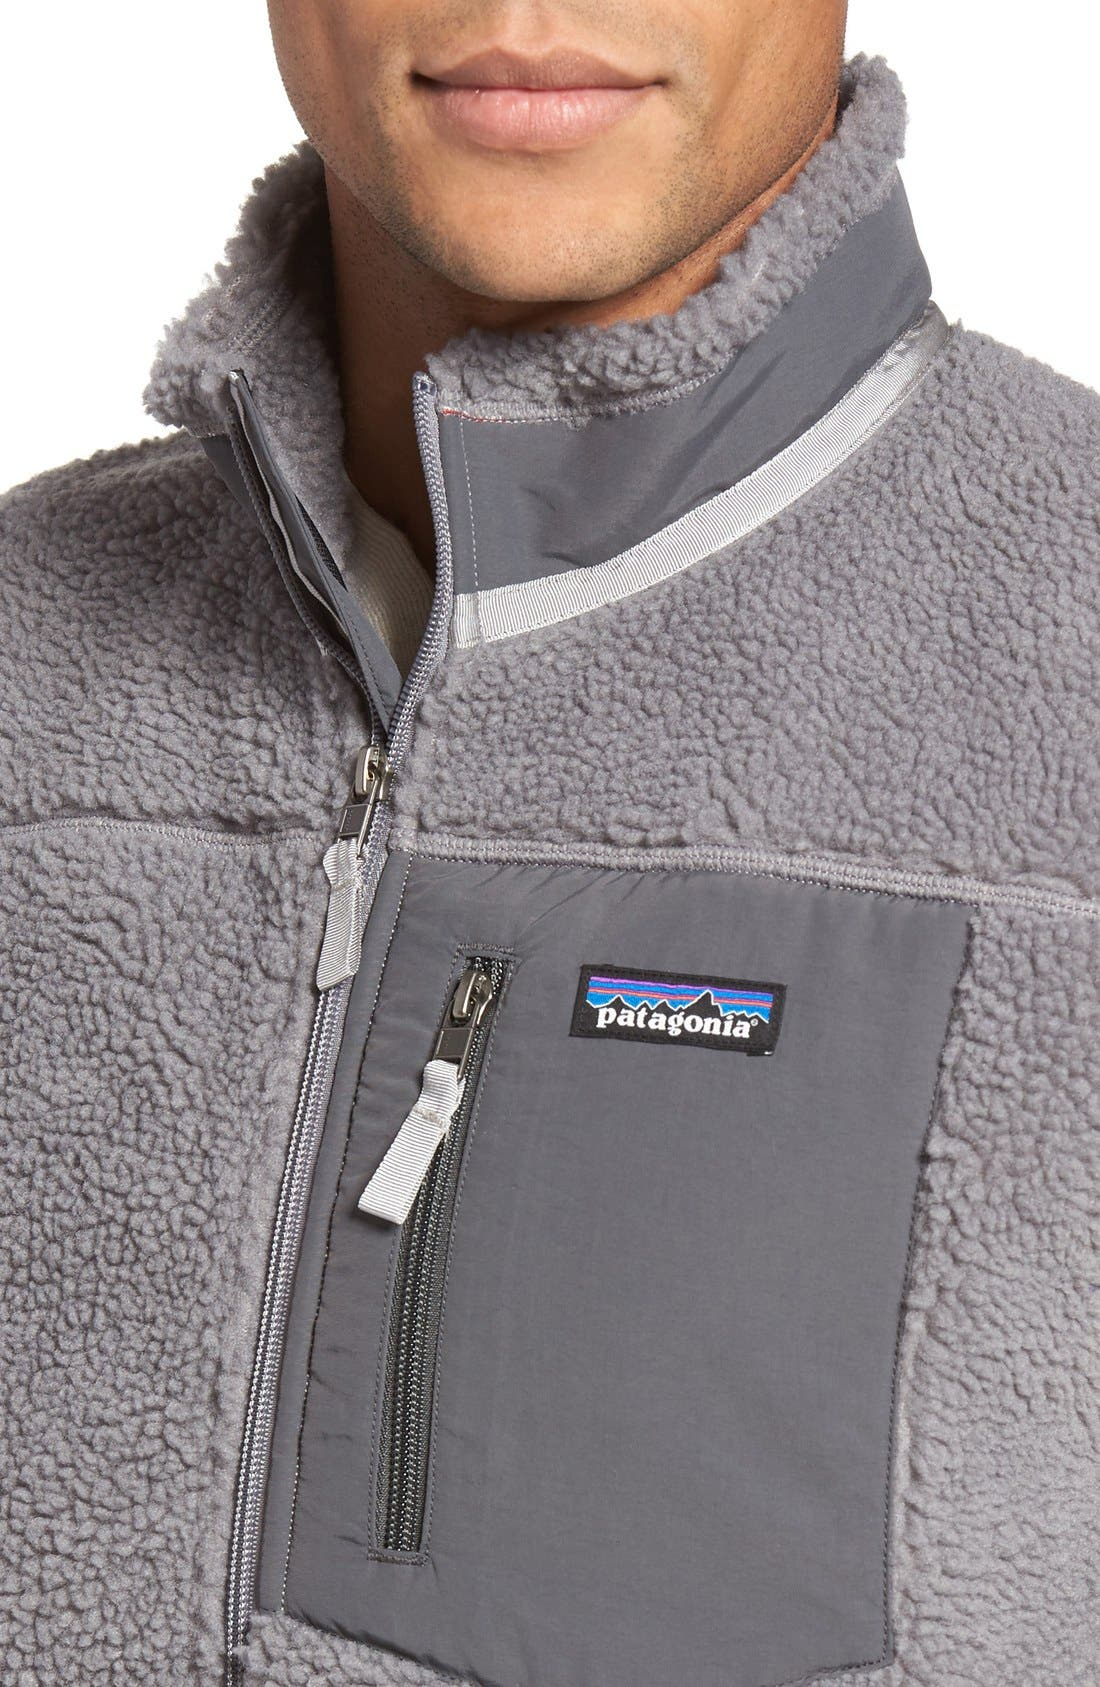 Classic Retro-X<sup>®</sup> Waterproof Vest,                             Alternate thumbnail 4, color,                             Feather Grey